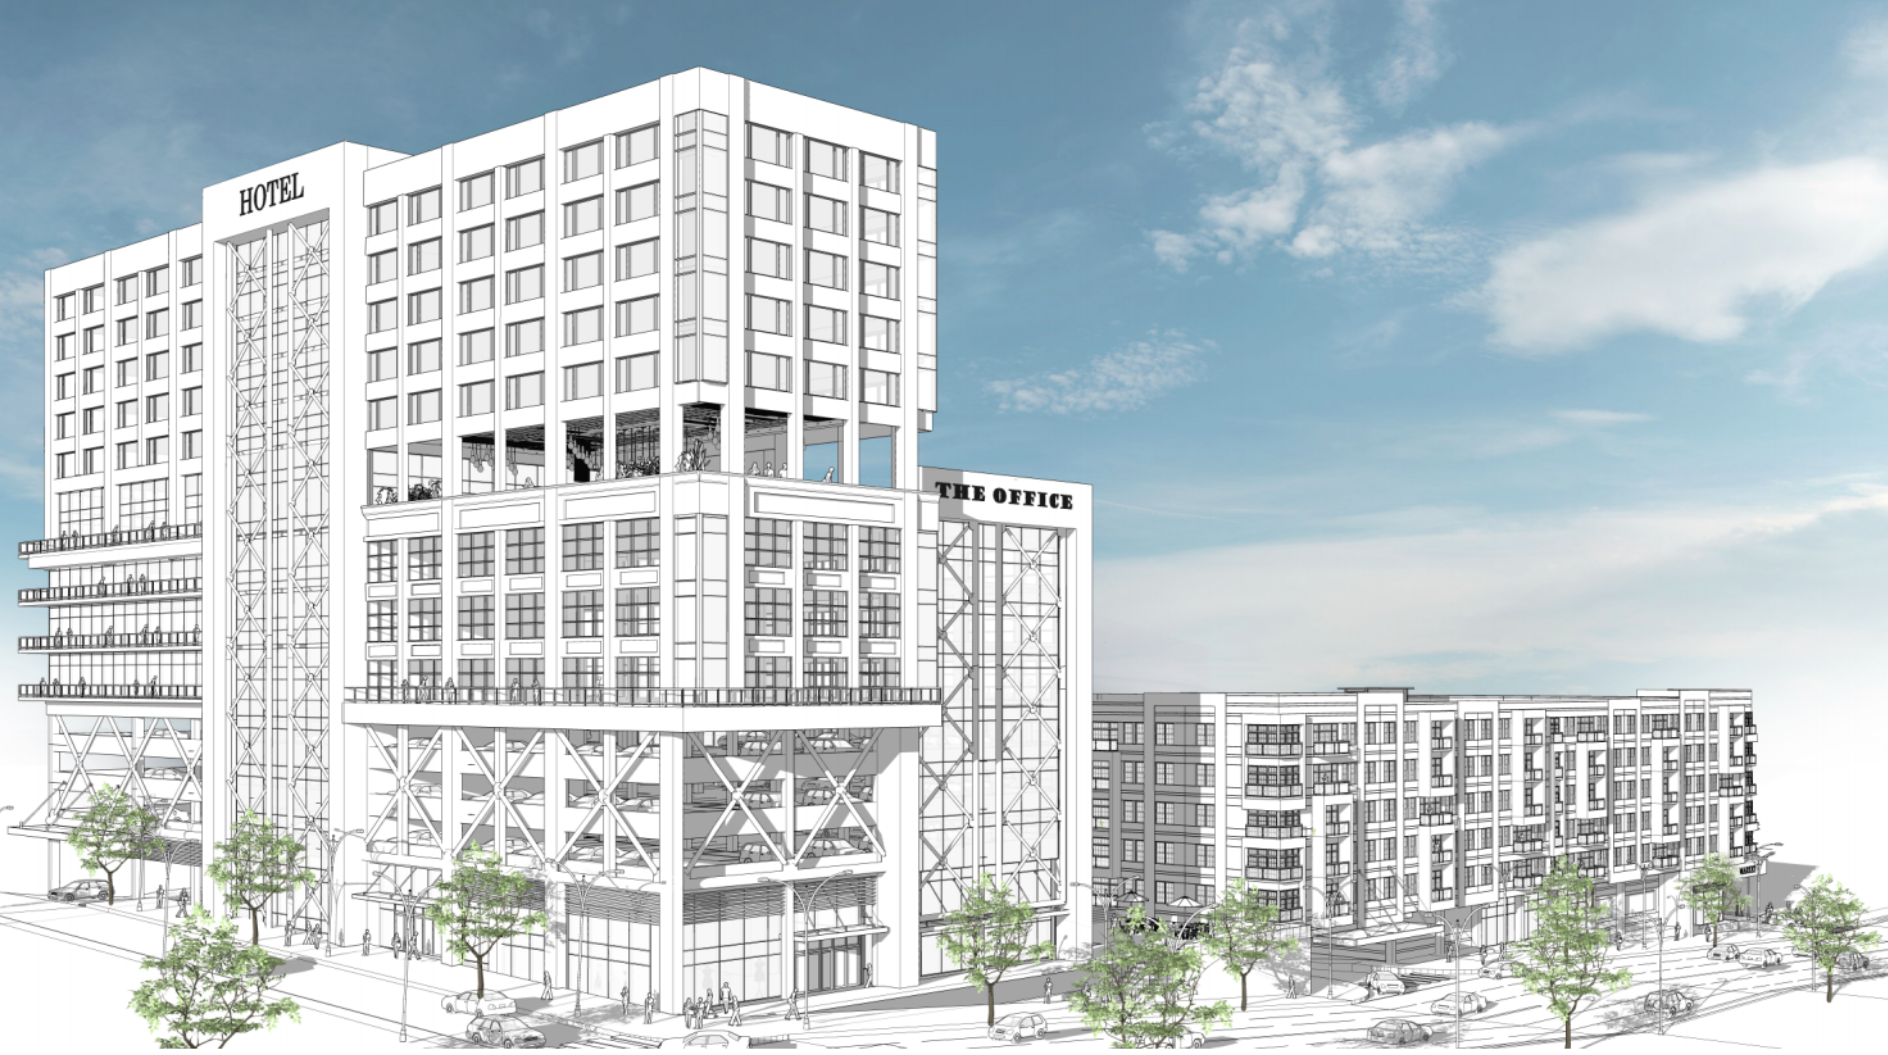 A rendering shows a white (uncolored) hotel stack with a mix of design patterns throughout. The hotel also has an outdoor patio area cut into the middle of the building. The background is a blue sky.